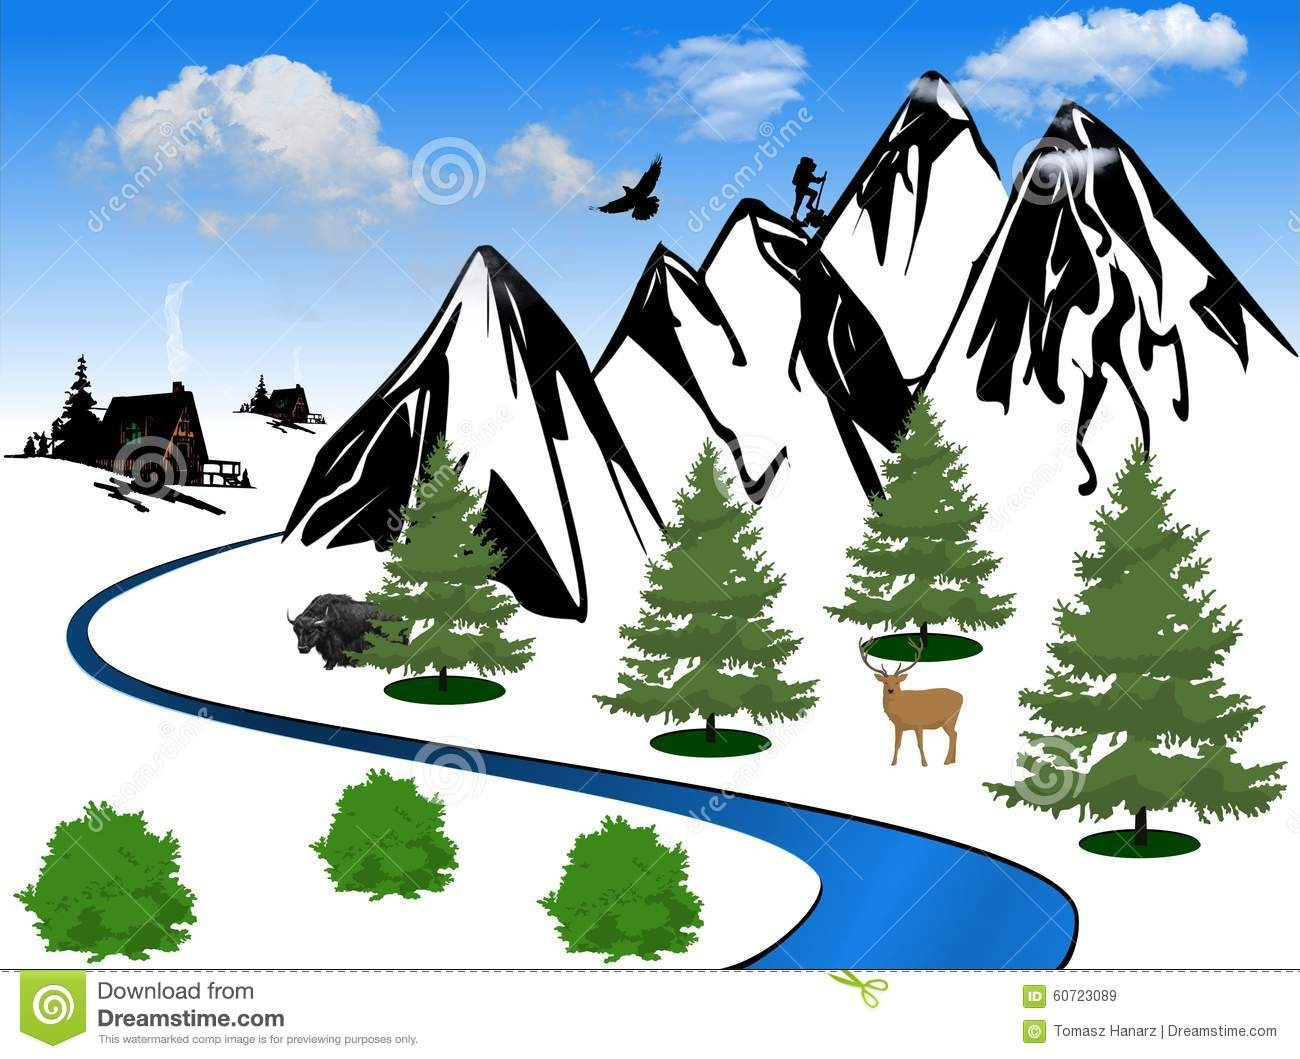 Mountain valley clipart 20 free Cliparts | Download images ...